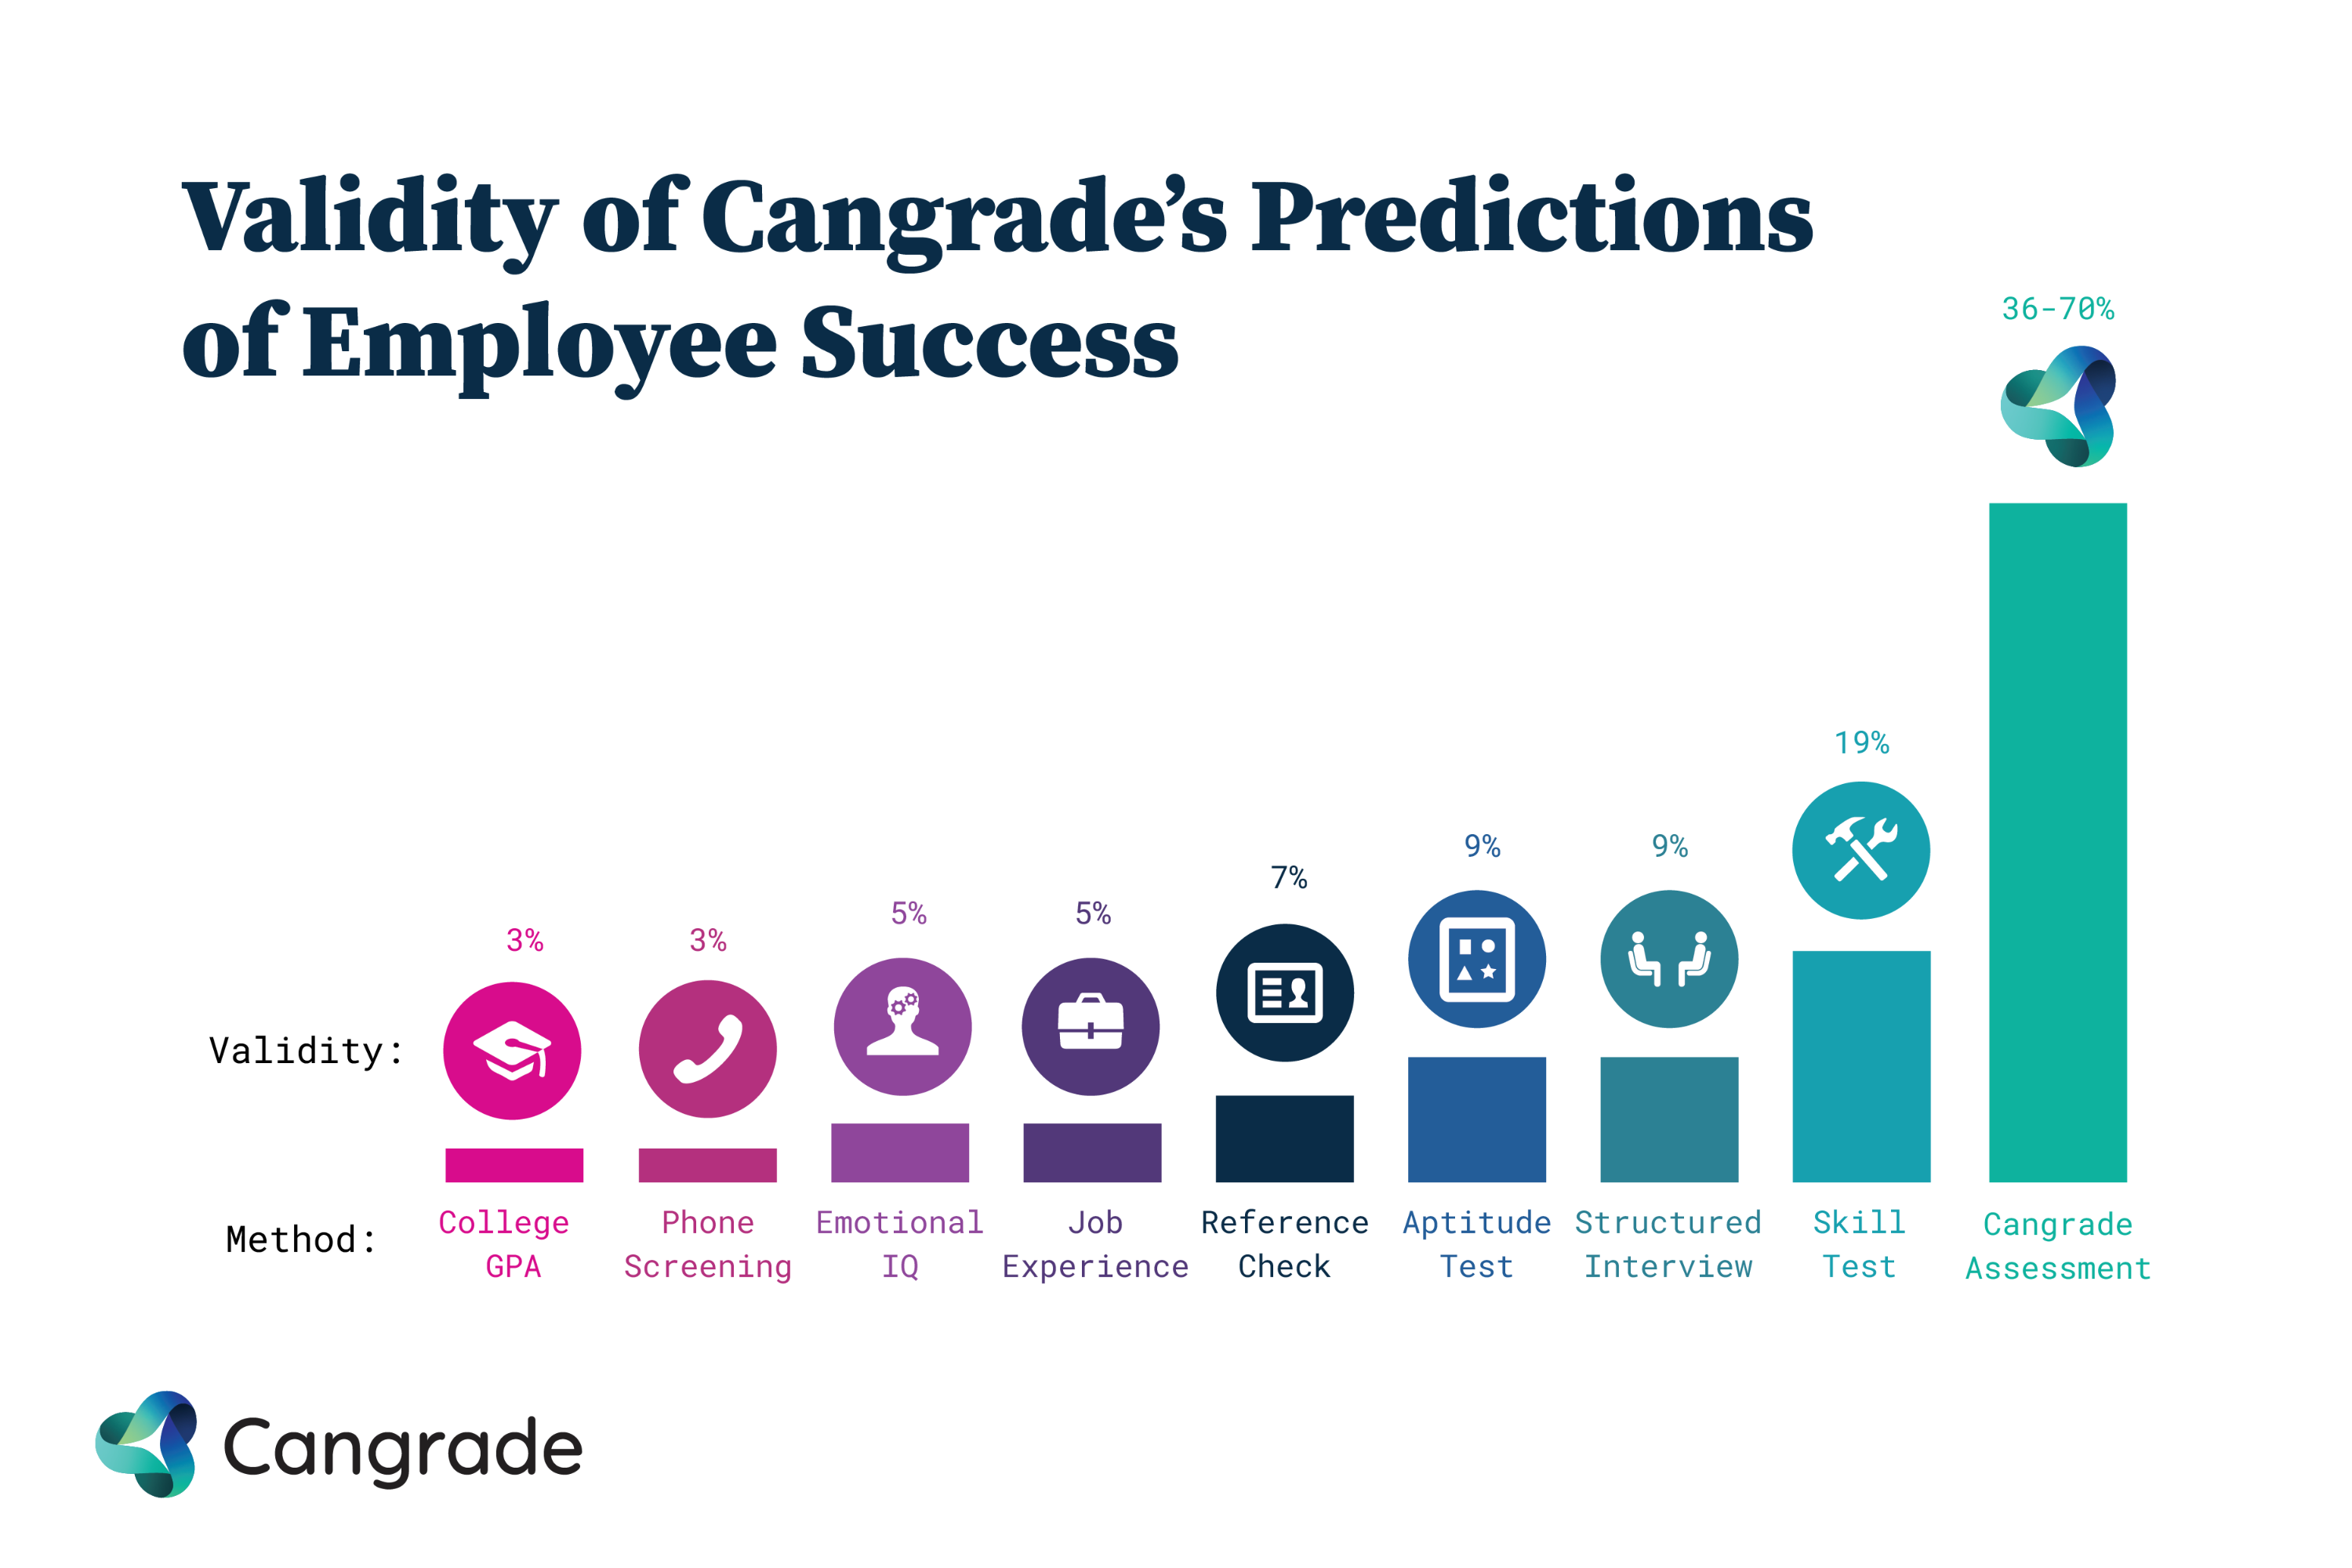 The Accuracy of Cangrade's Predictions